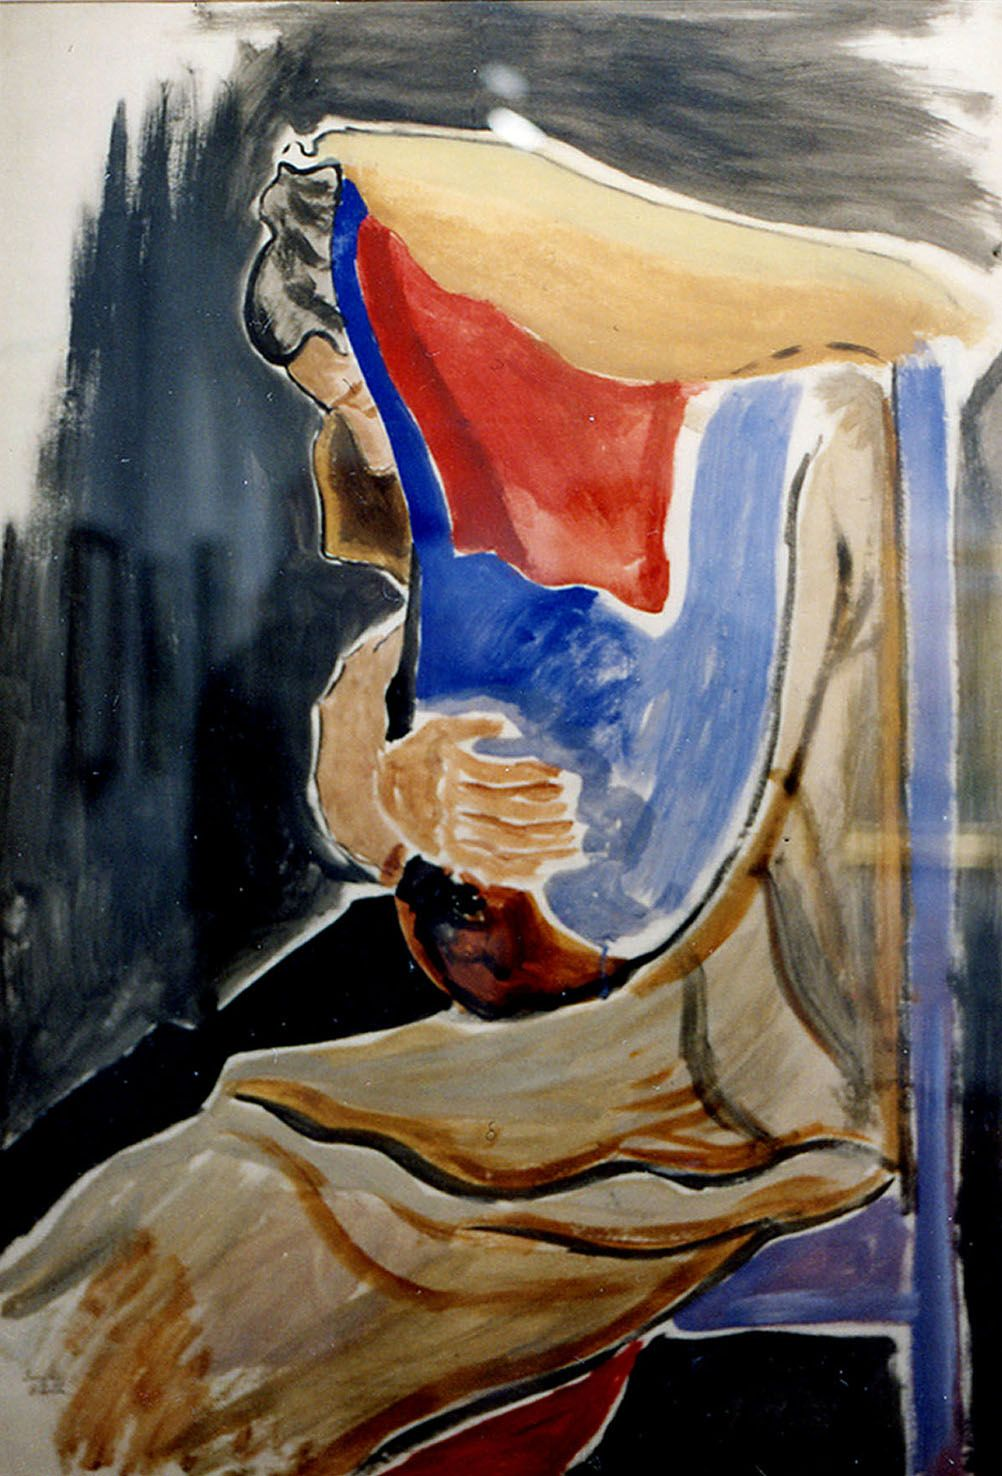 Joseph Stella, Seated Woman, watercolor on paper, 40 x 28 inches